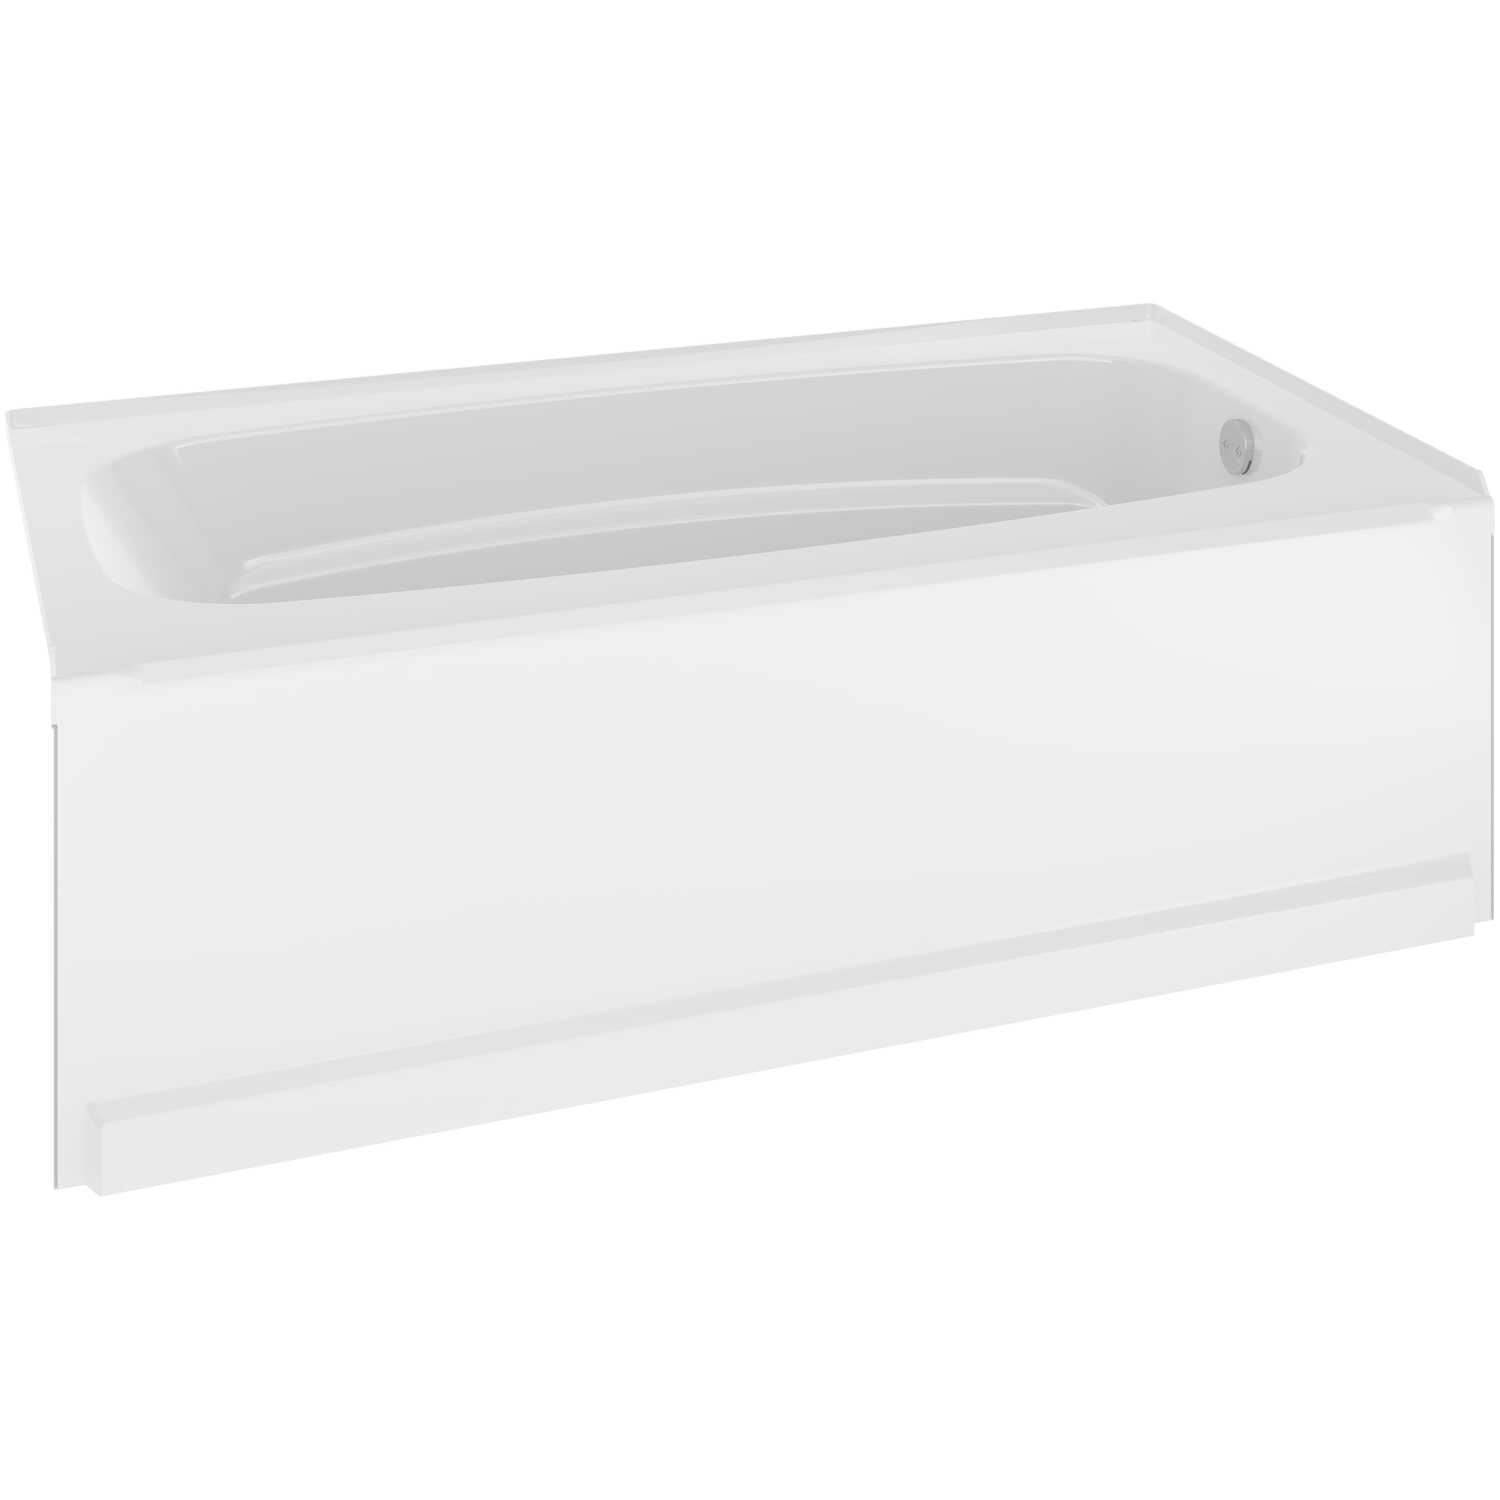 Delta Bathing System  Classic  18 in. H x 60 in. W x 32 in. L White  One Piece  Right Hand  Rectangl